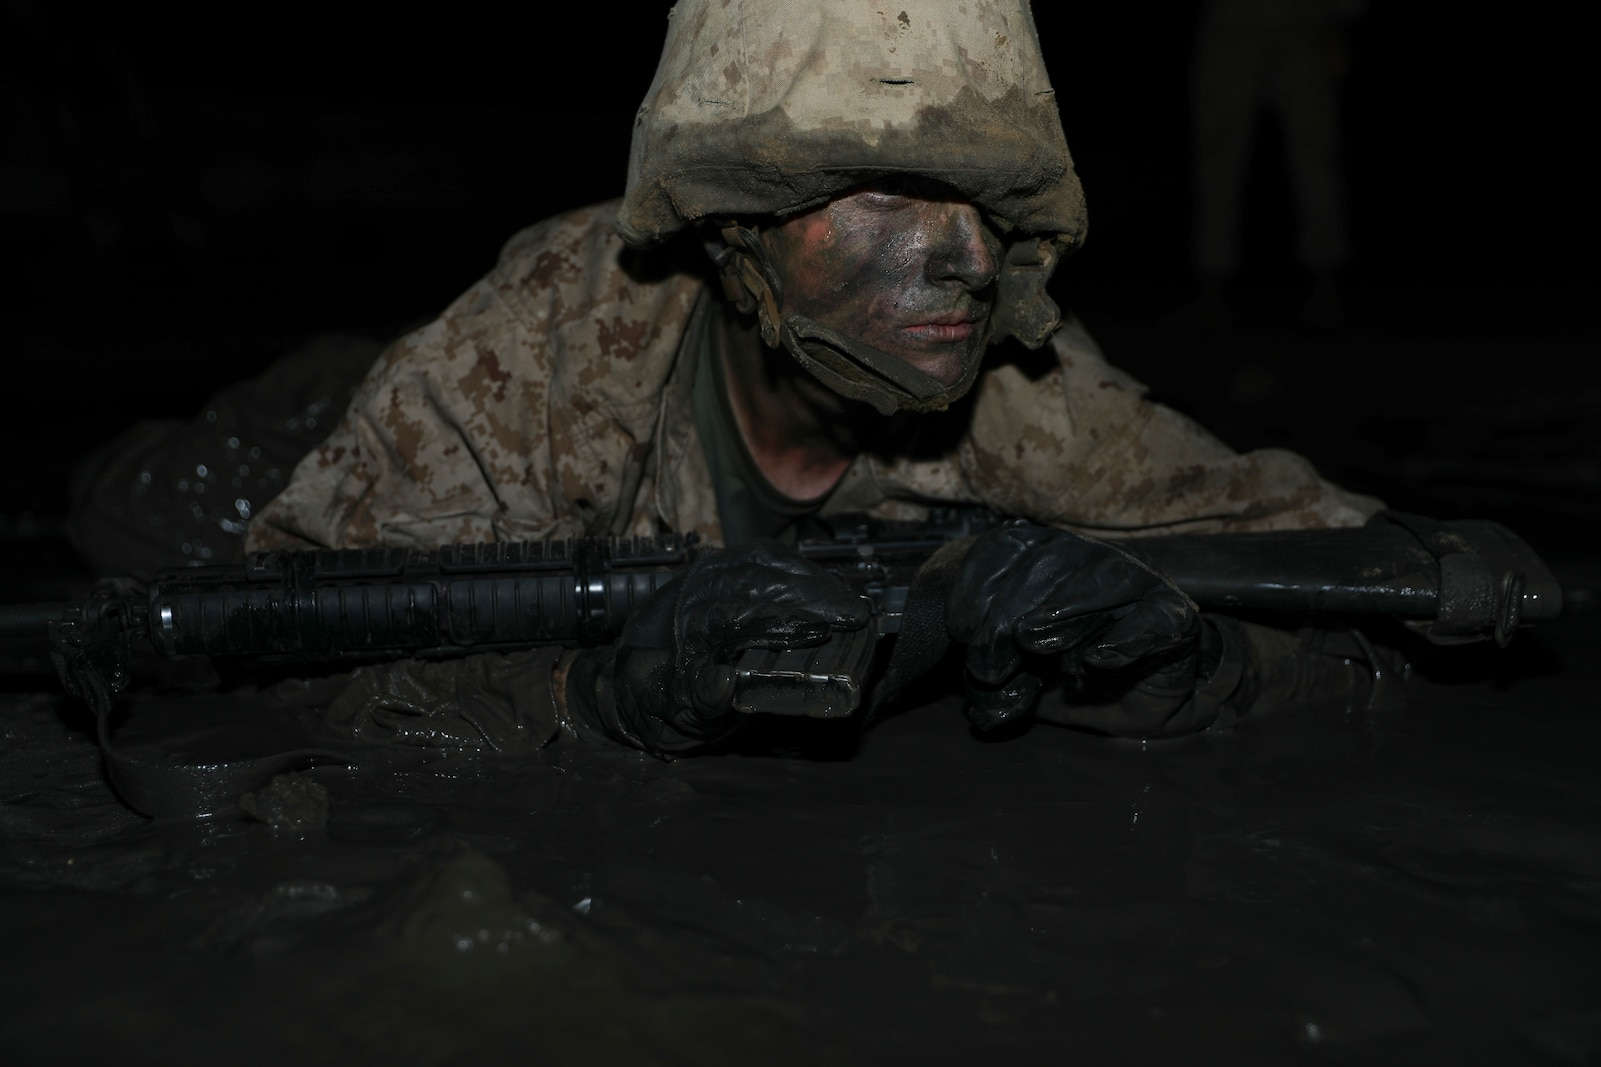 A recruit with Charlie Company, 1st Recruit Training Battalion, advances in a simulated battle during the Crucible aboard Marine Corps Depot Parris Island, Mar. 26, 2020. The Crucible is a 54-hour culminating event that requires recruits to work as a unit to overcome challenges.(U.S. Marine Corps photo by Lance Cpl. Ryan Hageali)